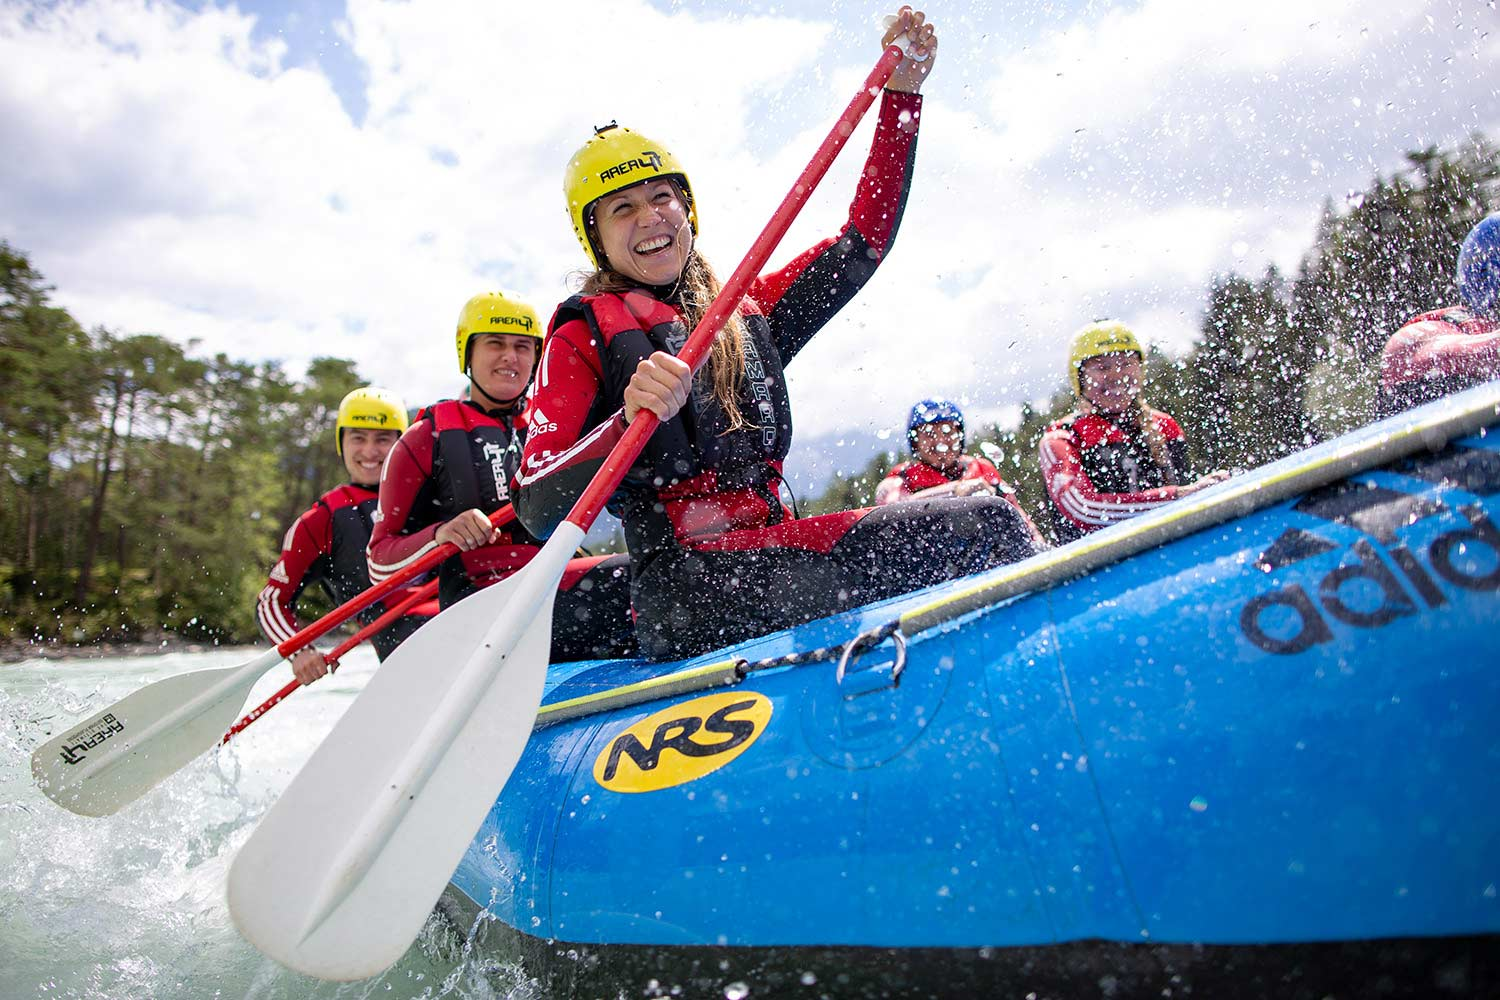 Rafting School Trip in Austria